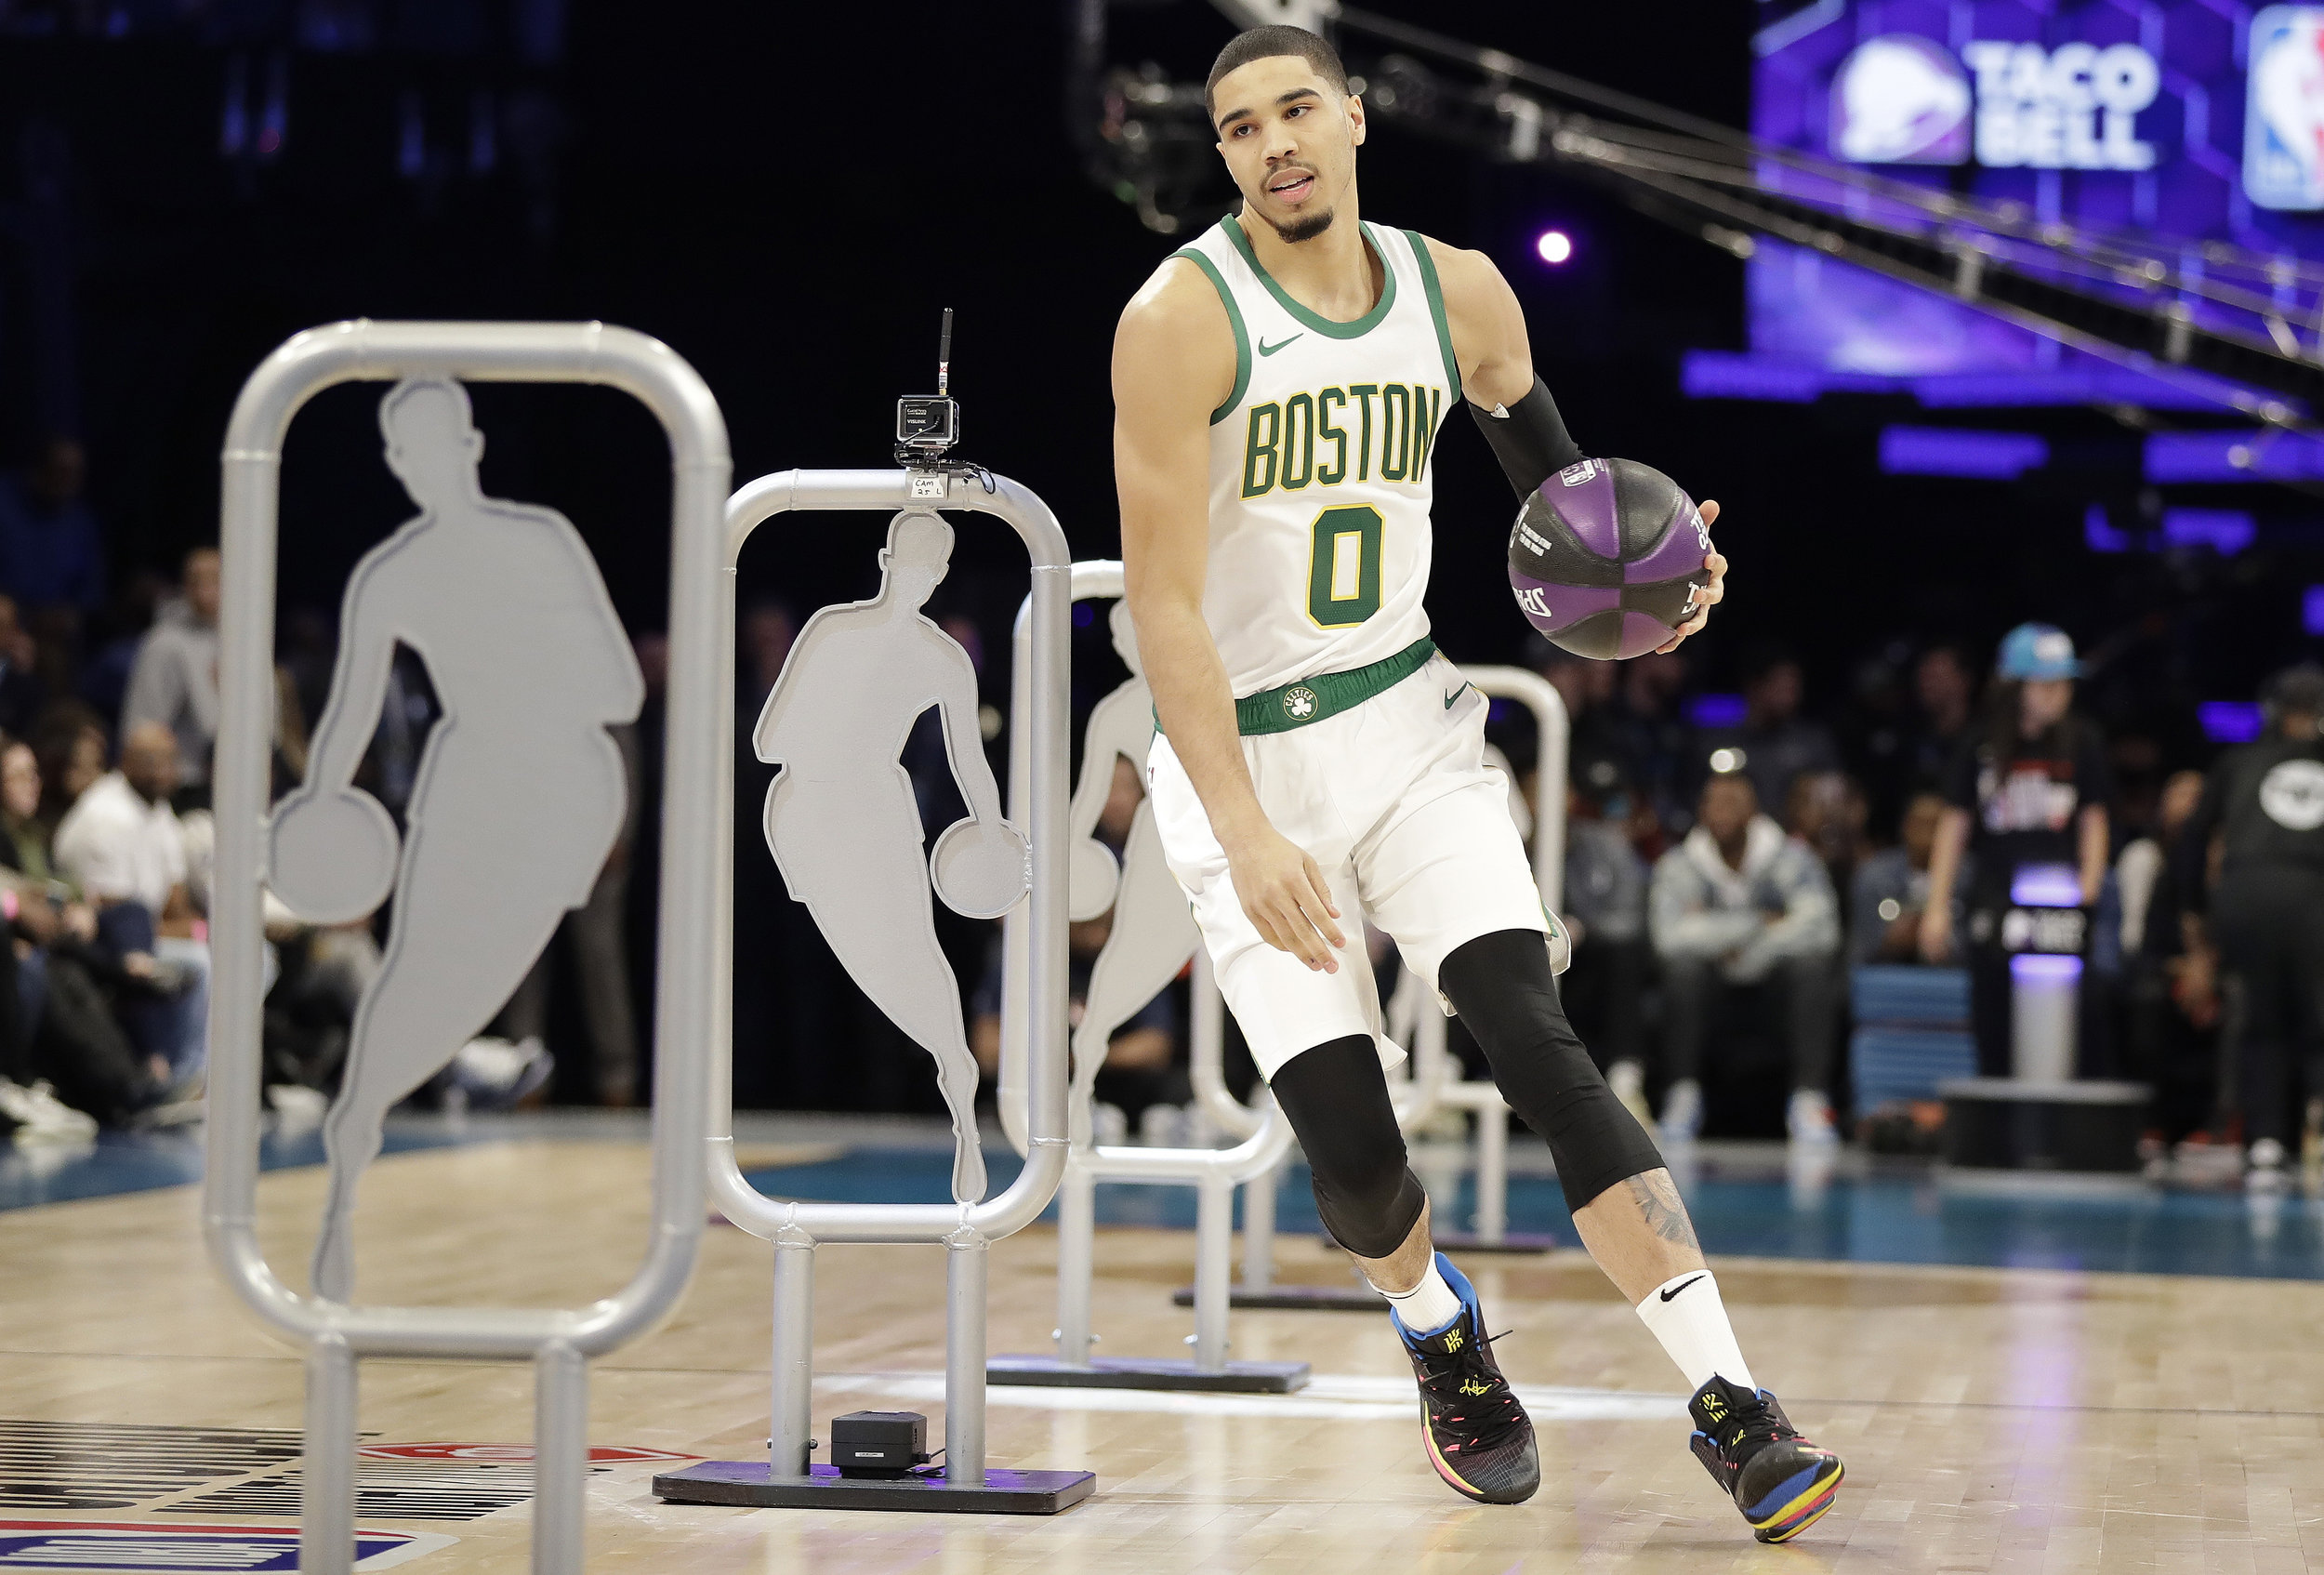 Boston Celtics Jayson Tatum participates during the NBA All-Star skills session basketball contest, Saturday, Feb. 16, 2019, in Charlotte, N.C. (AP Photo/Chuck Burton)